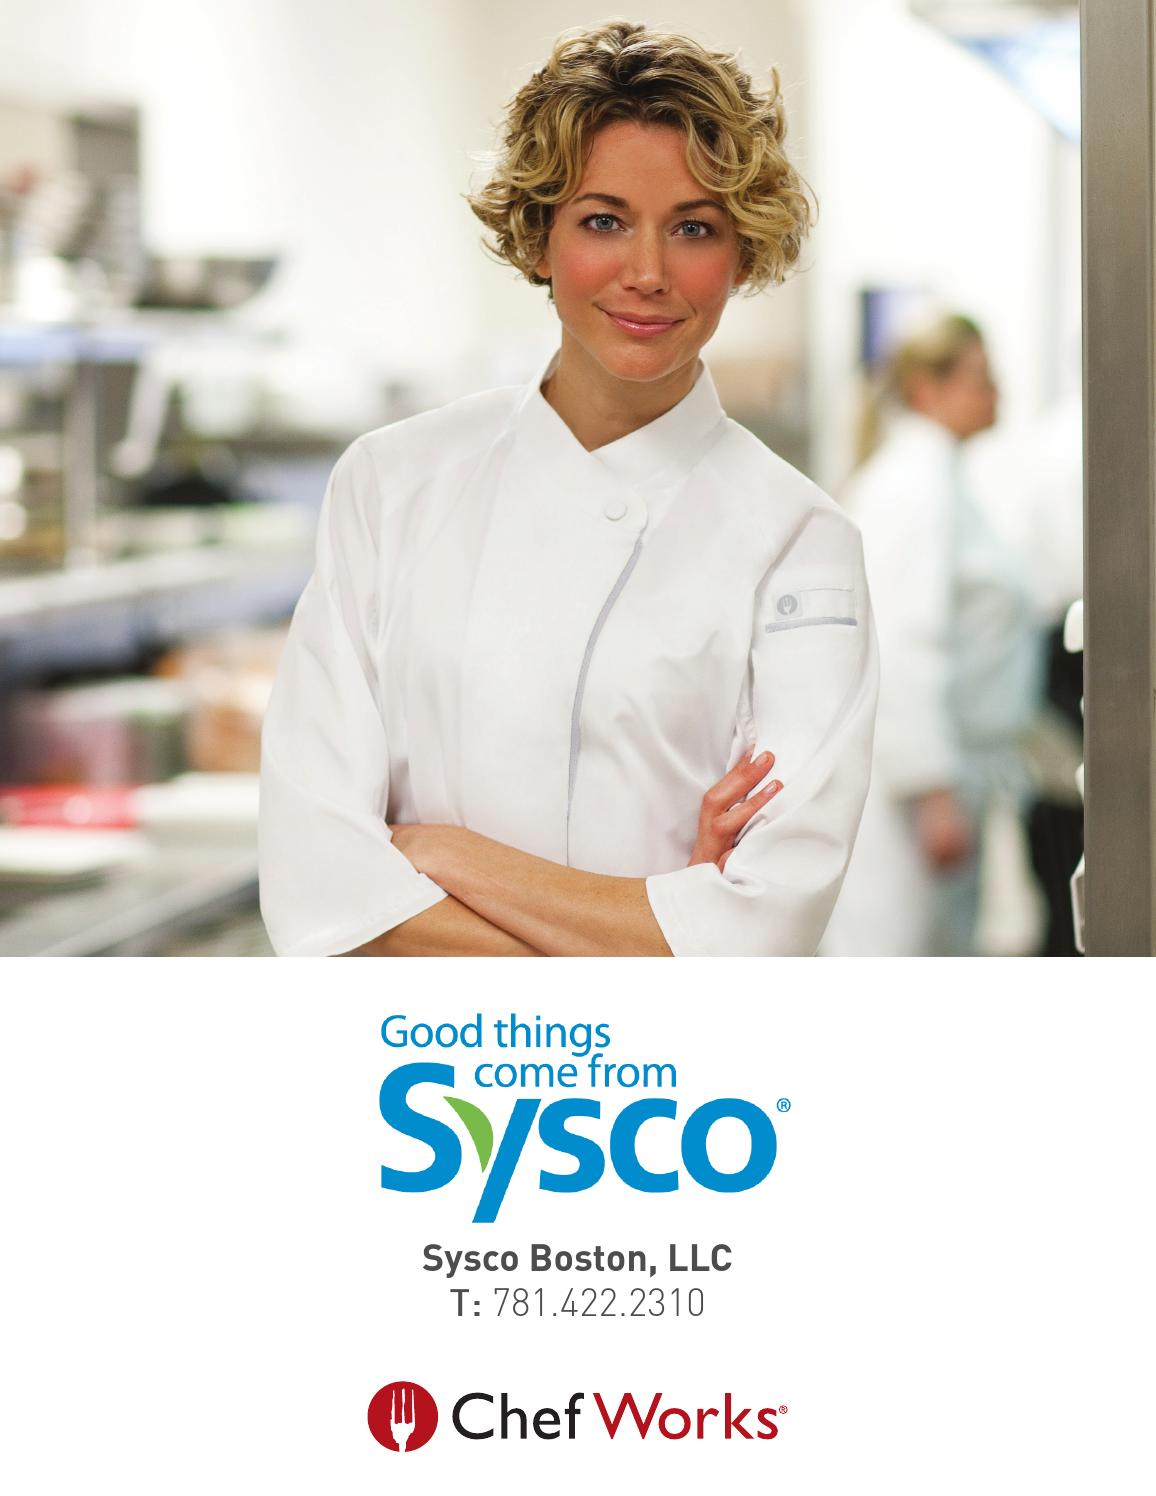 Sysco Chef Works Catalog by Chef Works - issuu